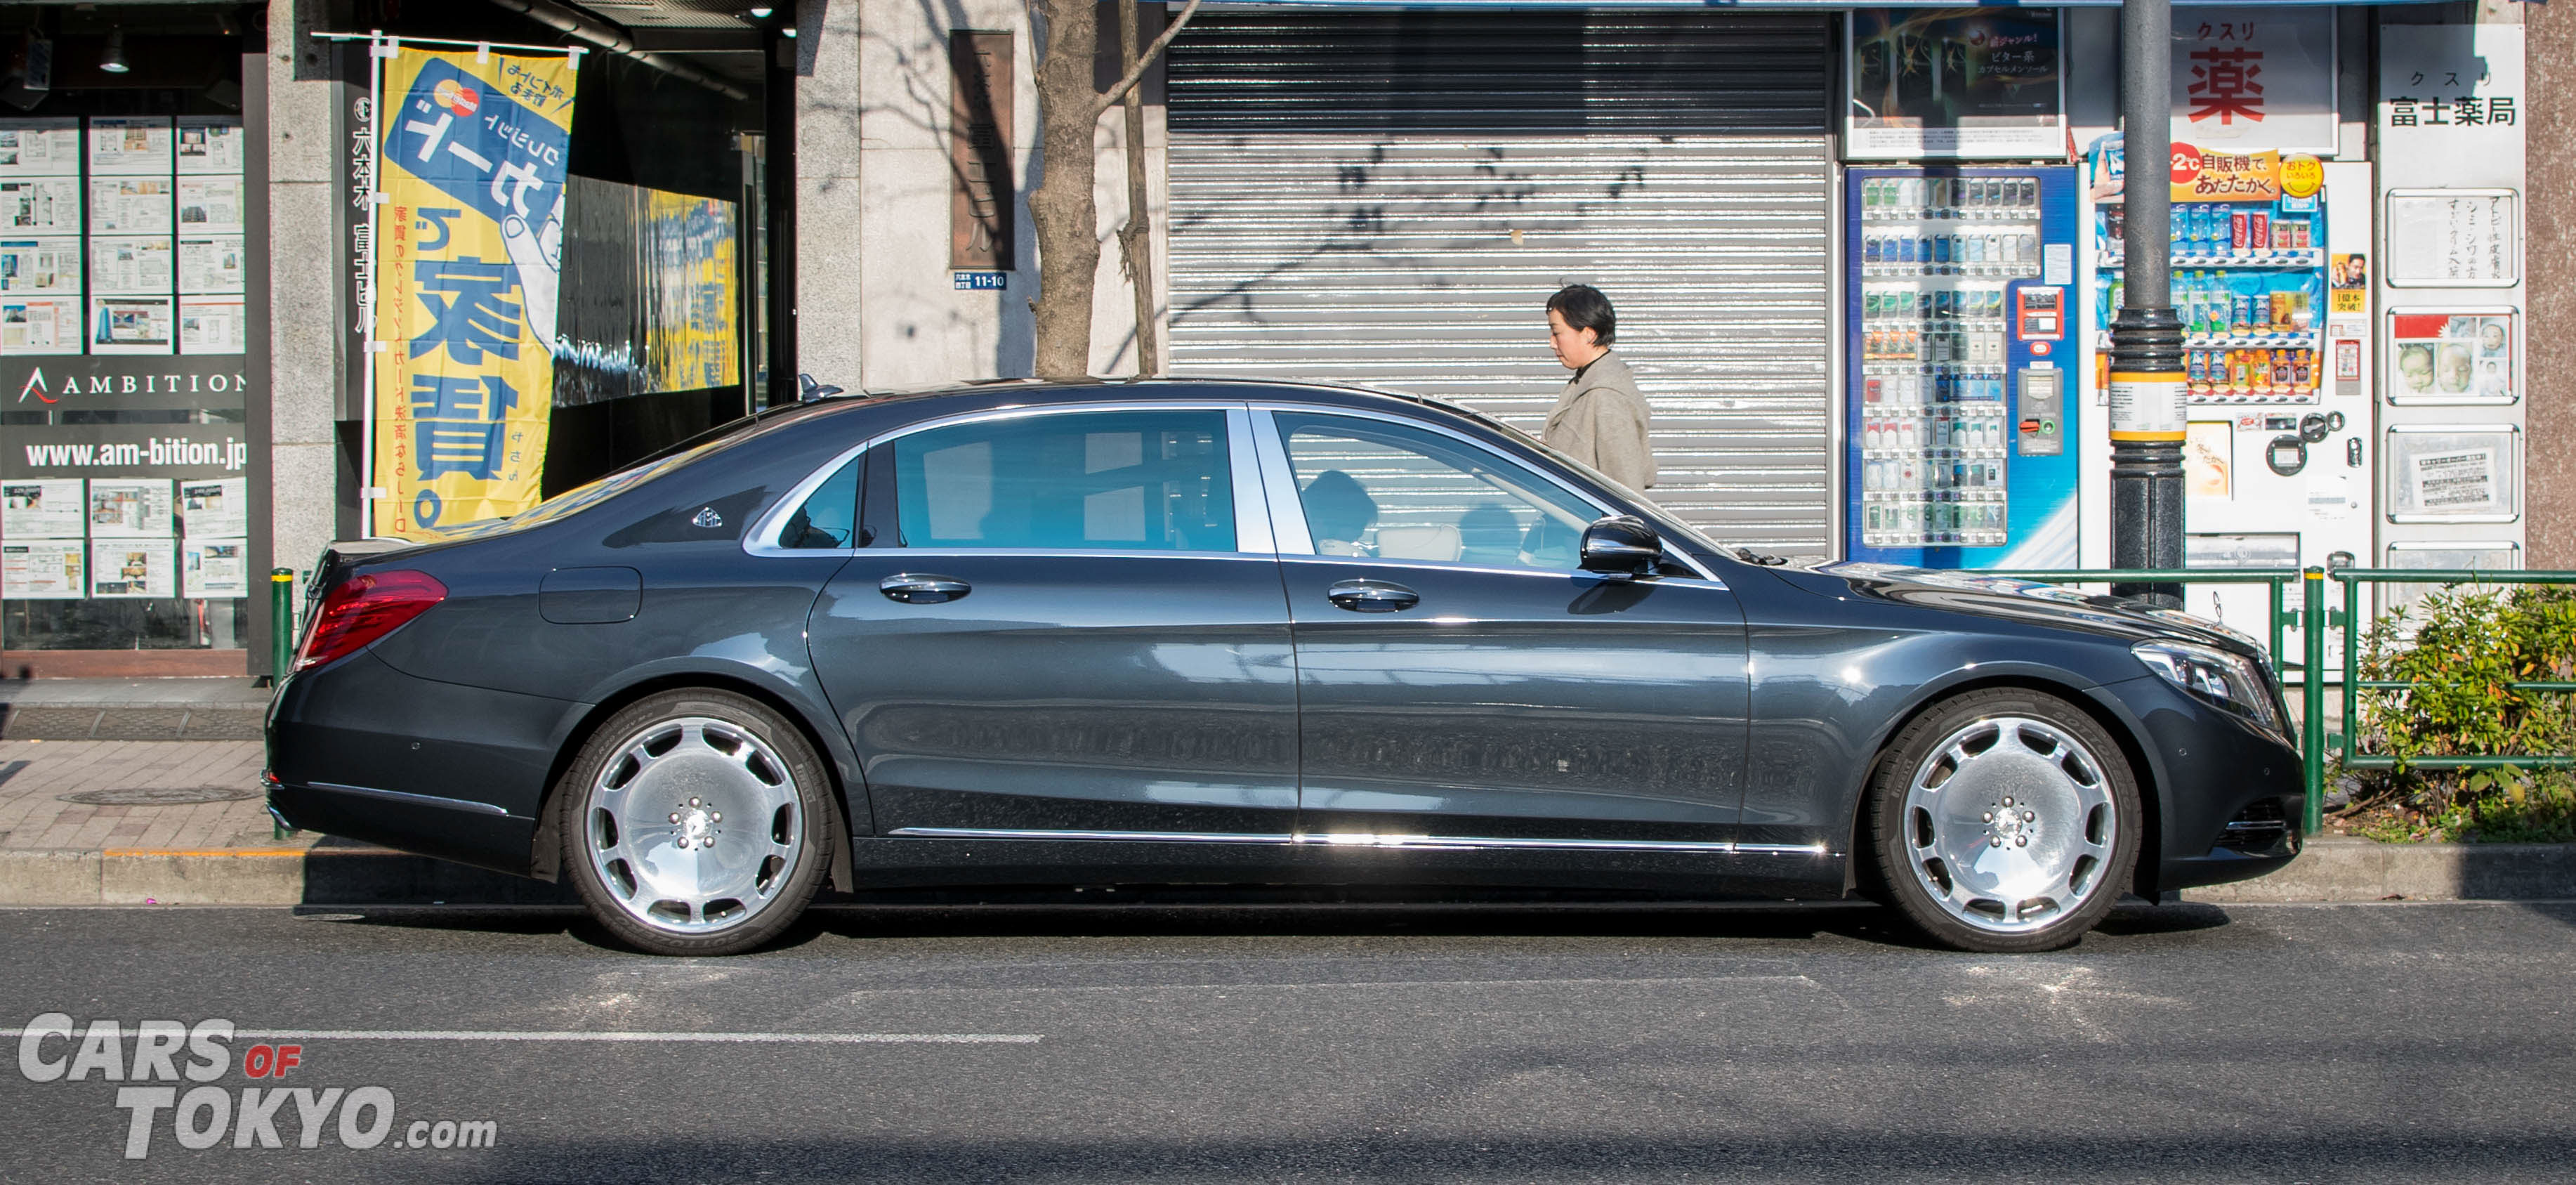 cars-of-tokyo-luxury-mercedes-benz-s-class-maybach